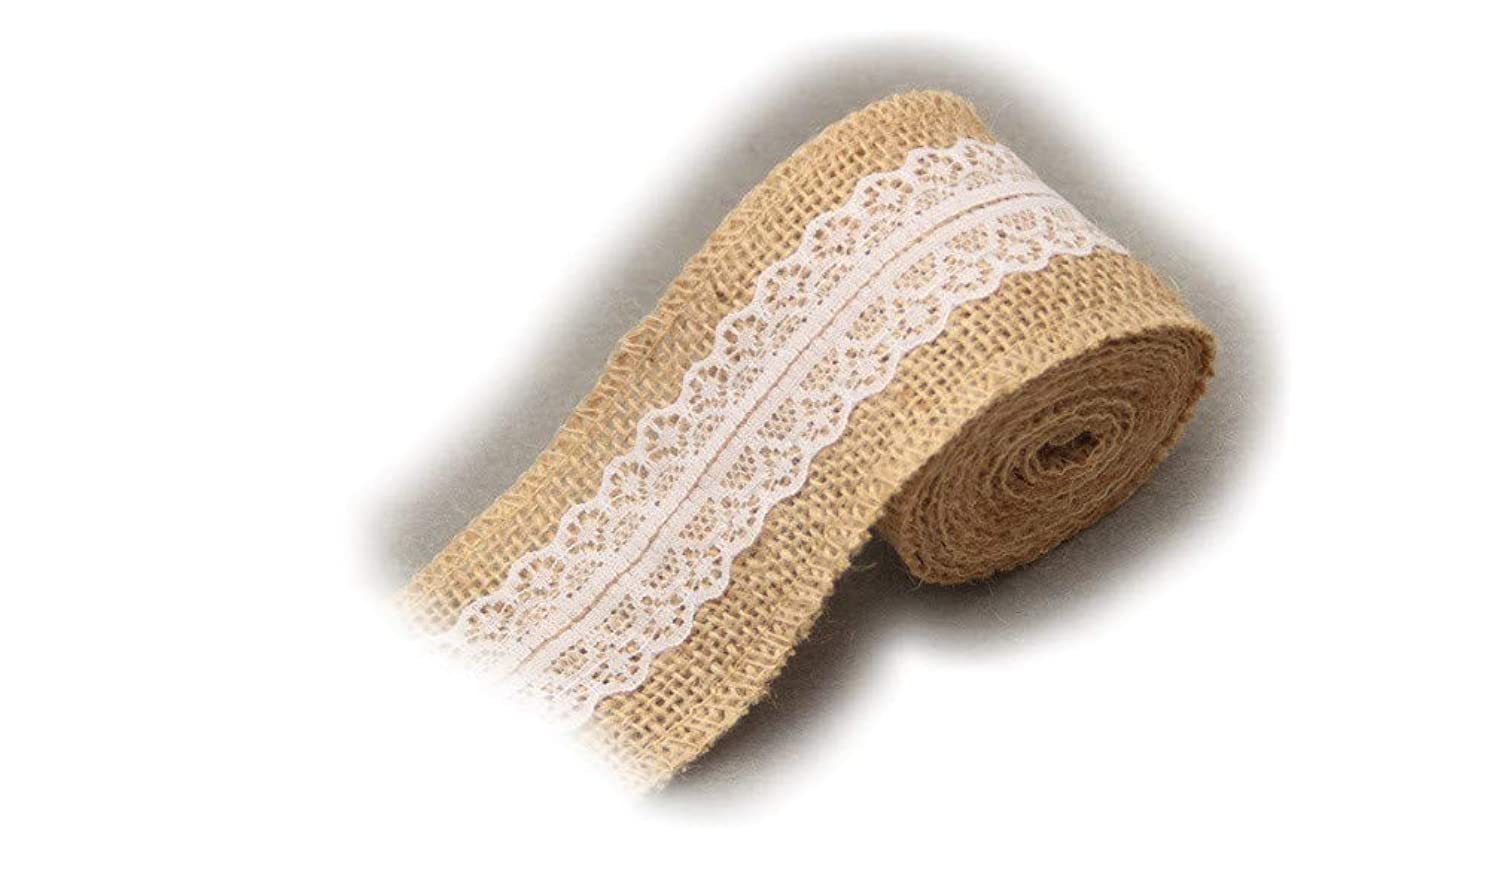 LKJHMN 3pack 235 Inches Natural Burlap Craft Ribbon Roll Wreath Fabric with White Lace 6.05m